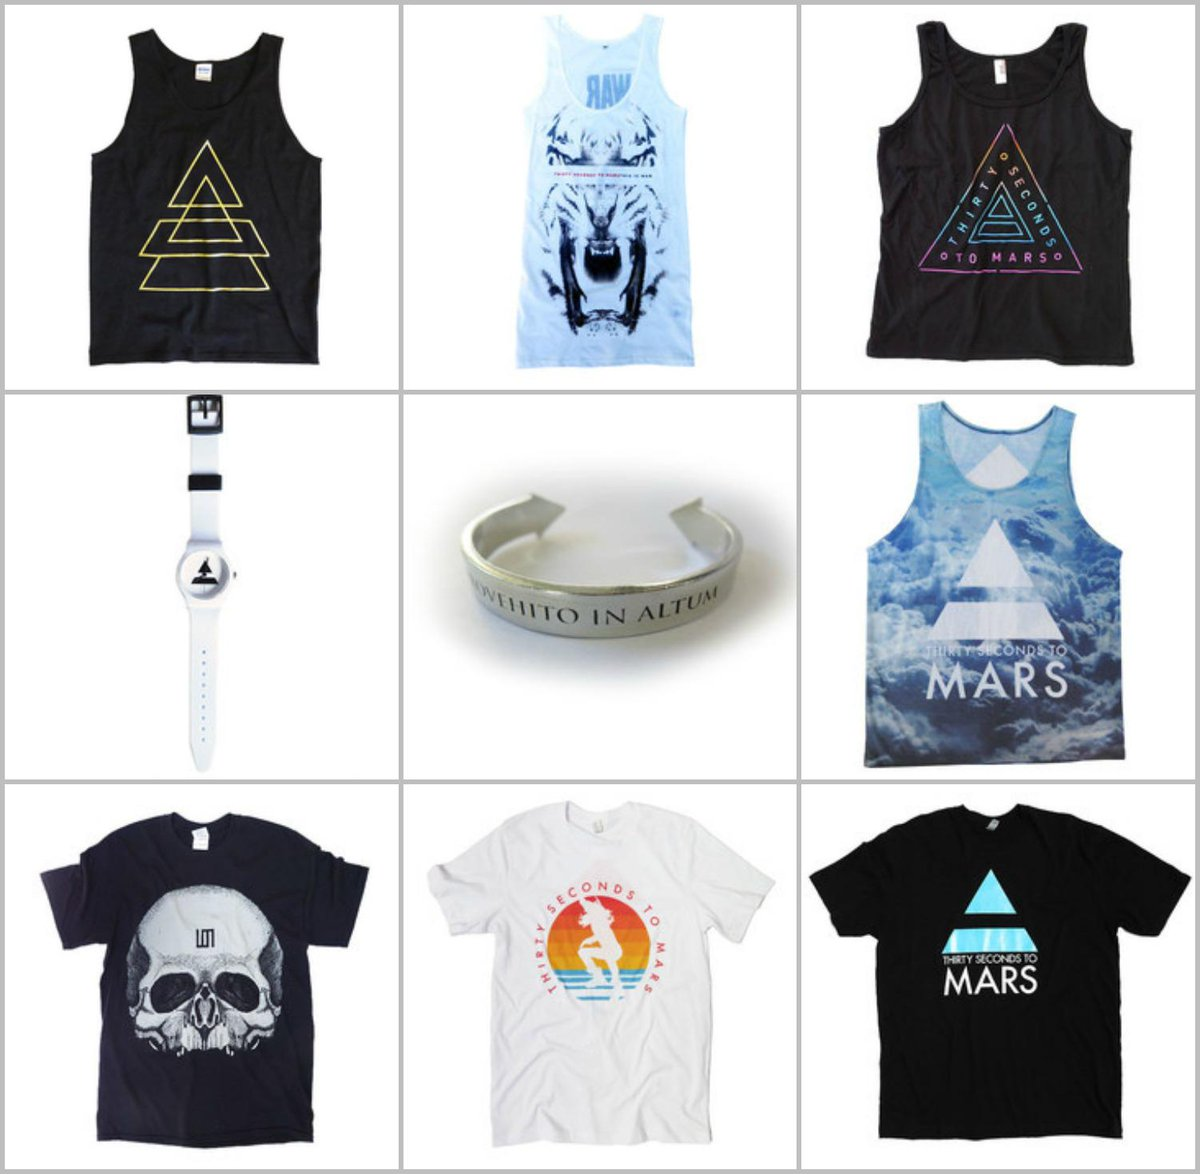 RT @MARSStore: GO GO GO! Only a few hours left to save up to 70% off storewide! Don't miss out! ???????? ???? --> http://t.co/SJ5M6WoyN6 http://t.co…